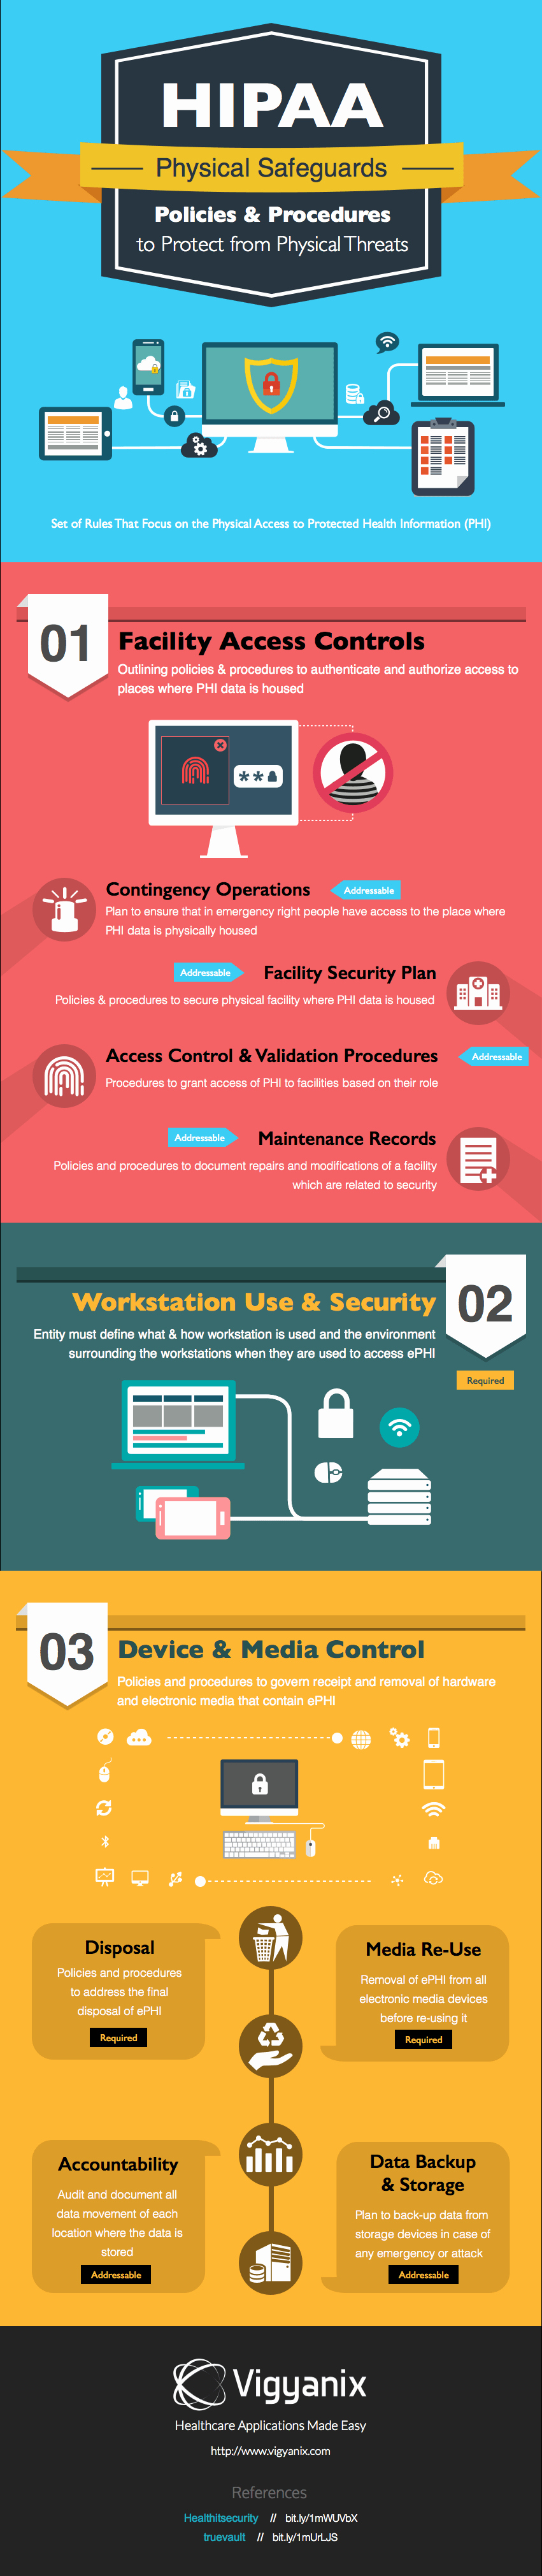 Physical Security Policy Template Beautiful Hipaa Physical Safeguards Policies and Procedures to Protect From Physical Threats [infographic